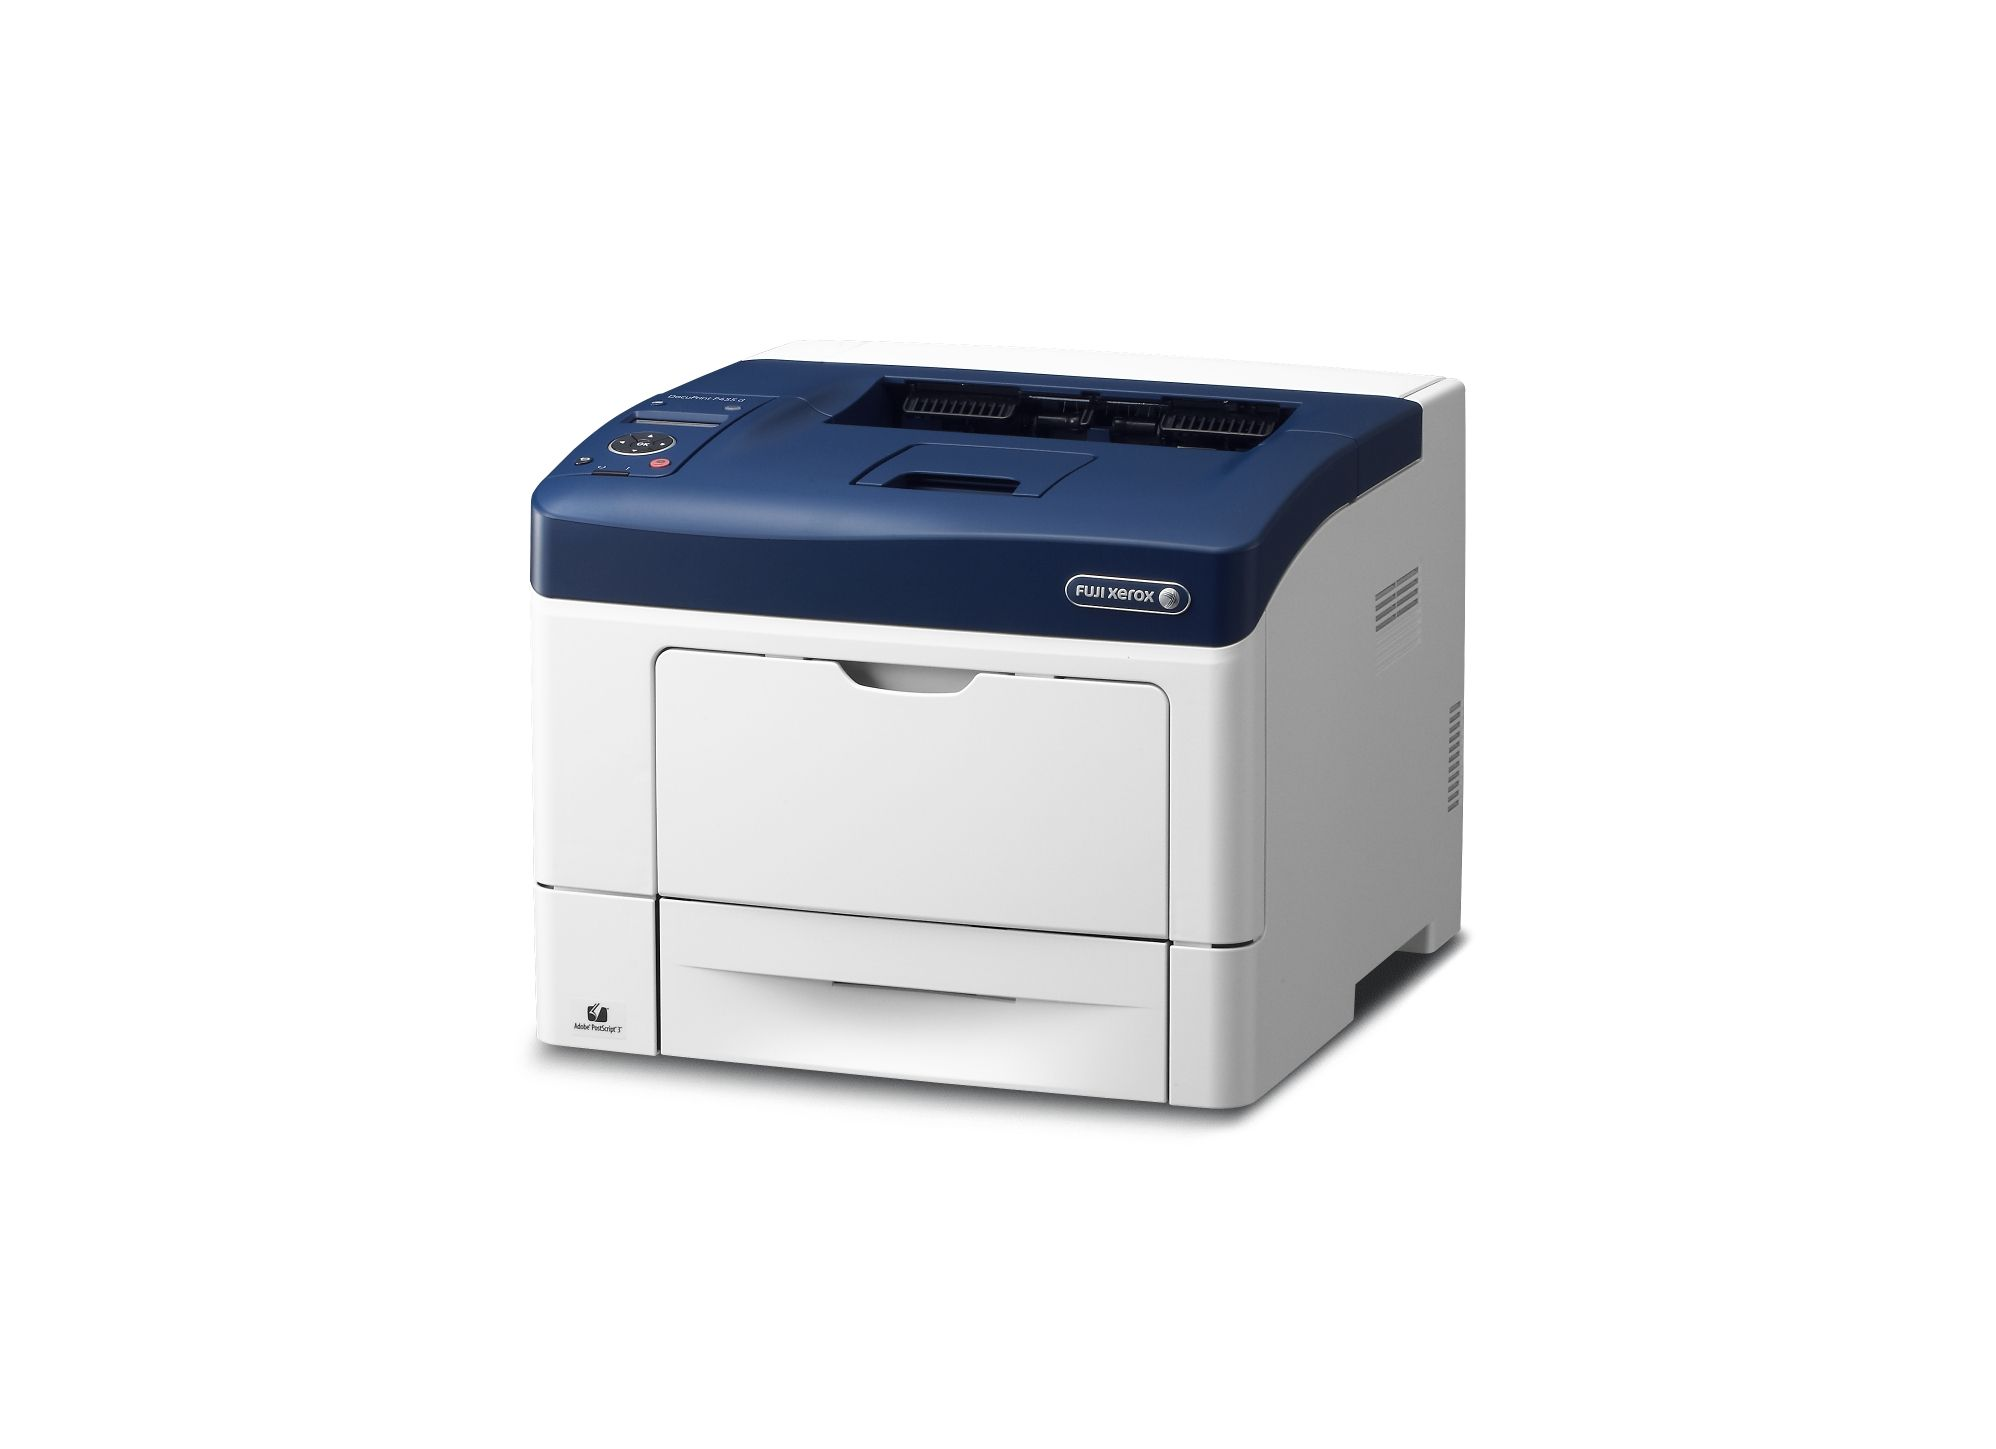 Fuji Xerox Printer Latest Reviews Side By Side Somparisons